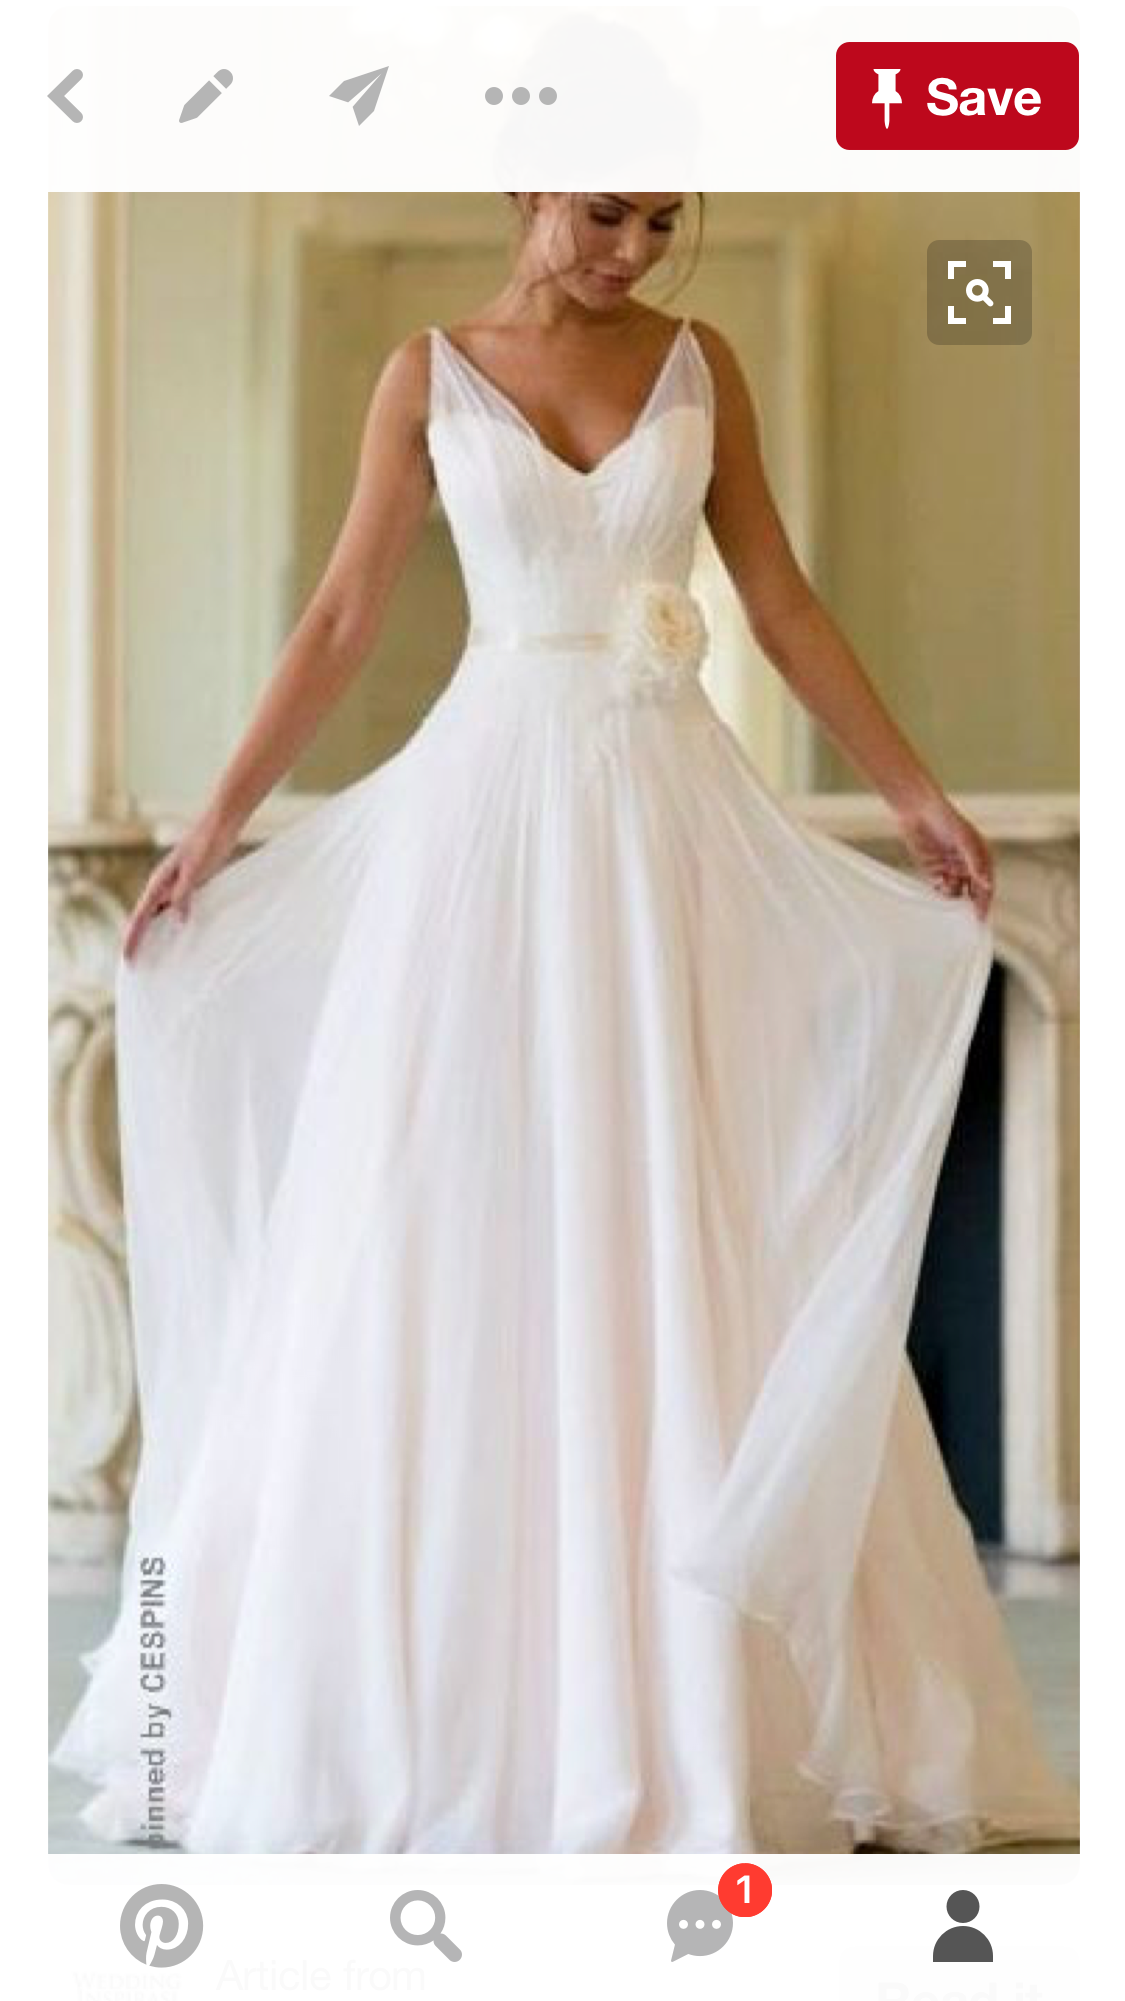 Pin von Sue Ann Mckinney auf Wedding dresses | Pinterest